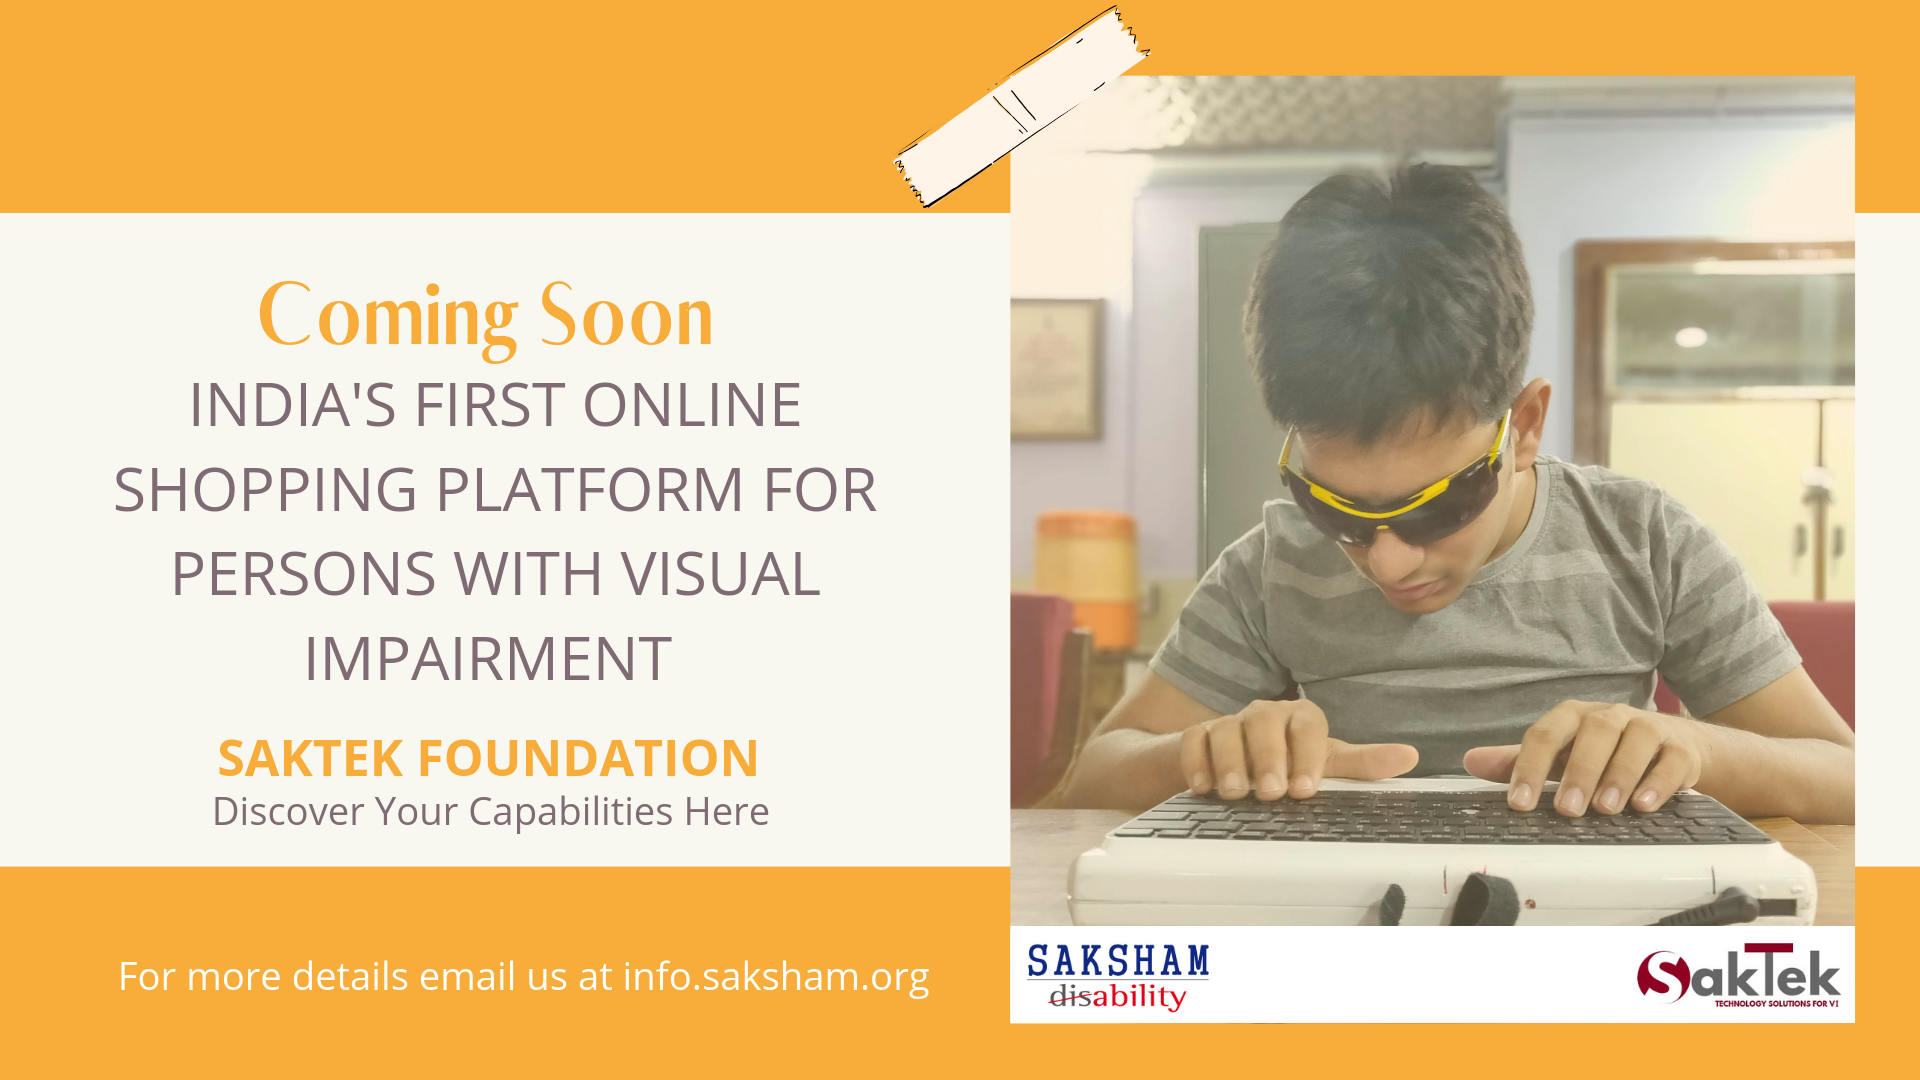 Online-Store-for-Assistive-Technology-Solution-for-persons-with-Visual-Impairment--Launching-Soon.-